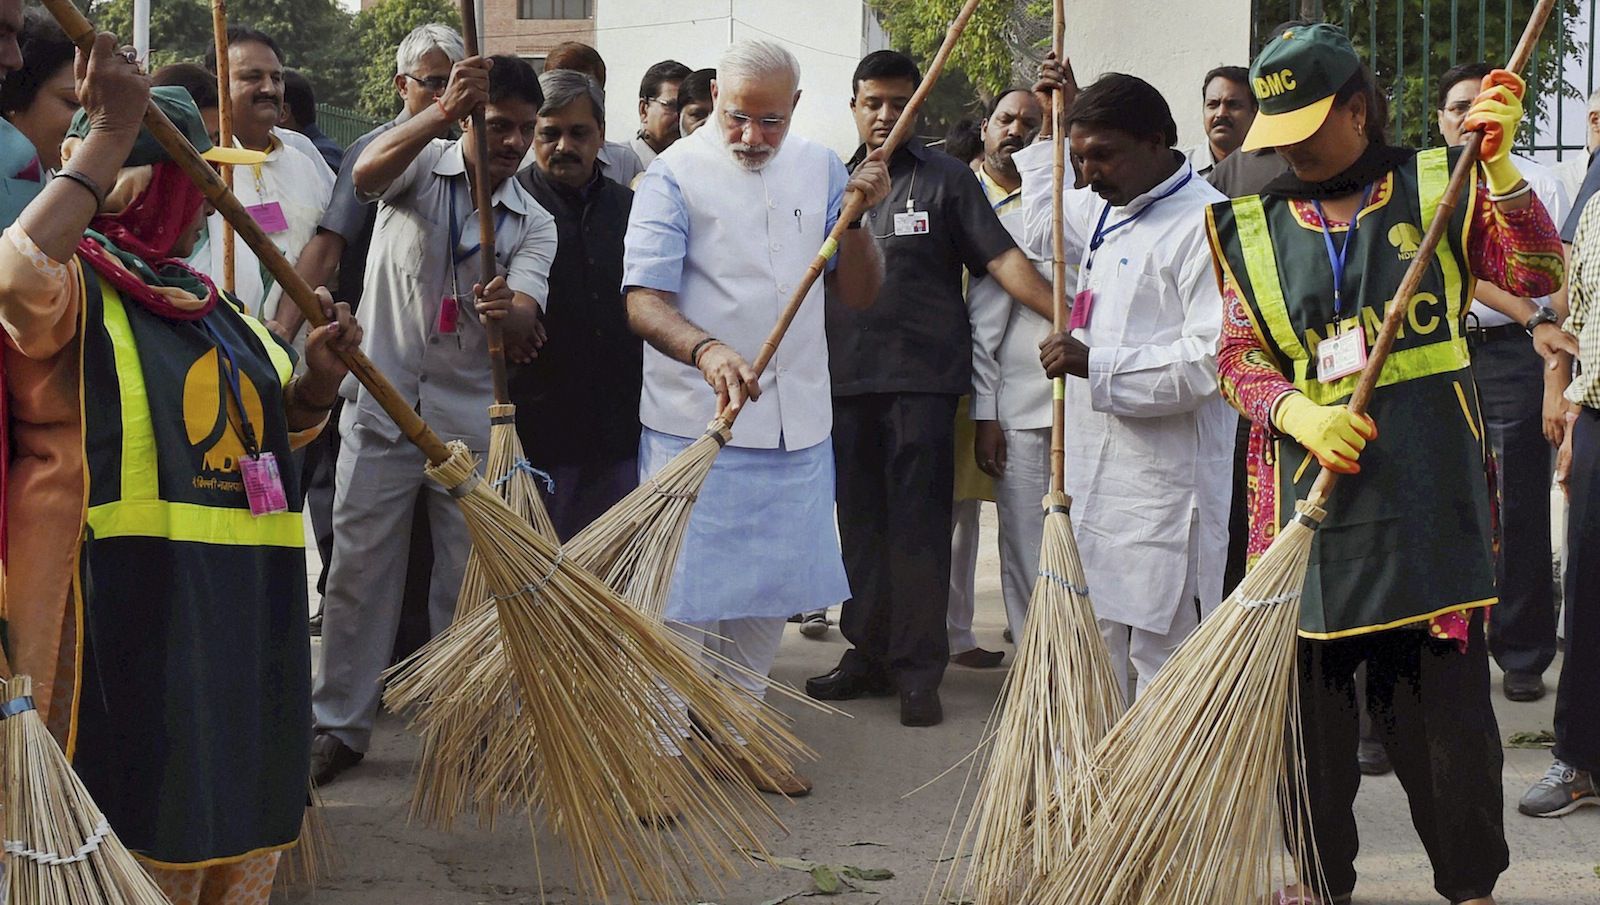 Indian Prime Minister Narendra Modi, center, sweeps an a road with a broom along with civic workers in New Delhi, India, Thursday, Oct. 2, 2014. Modi joined millions of schoolchildren, officials and ordinary people who picked up brooms and dustpans Thursday in a countrywide campaign to clean parks, public buildings and streets. (AP Photo/Press Trust of India)